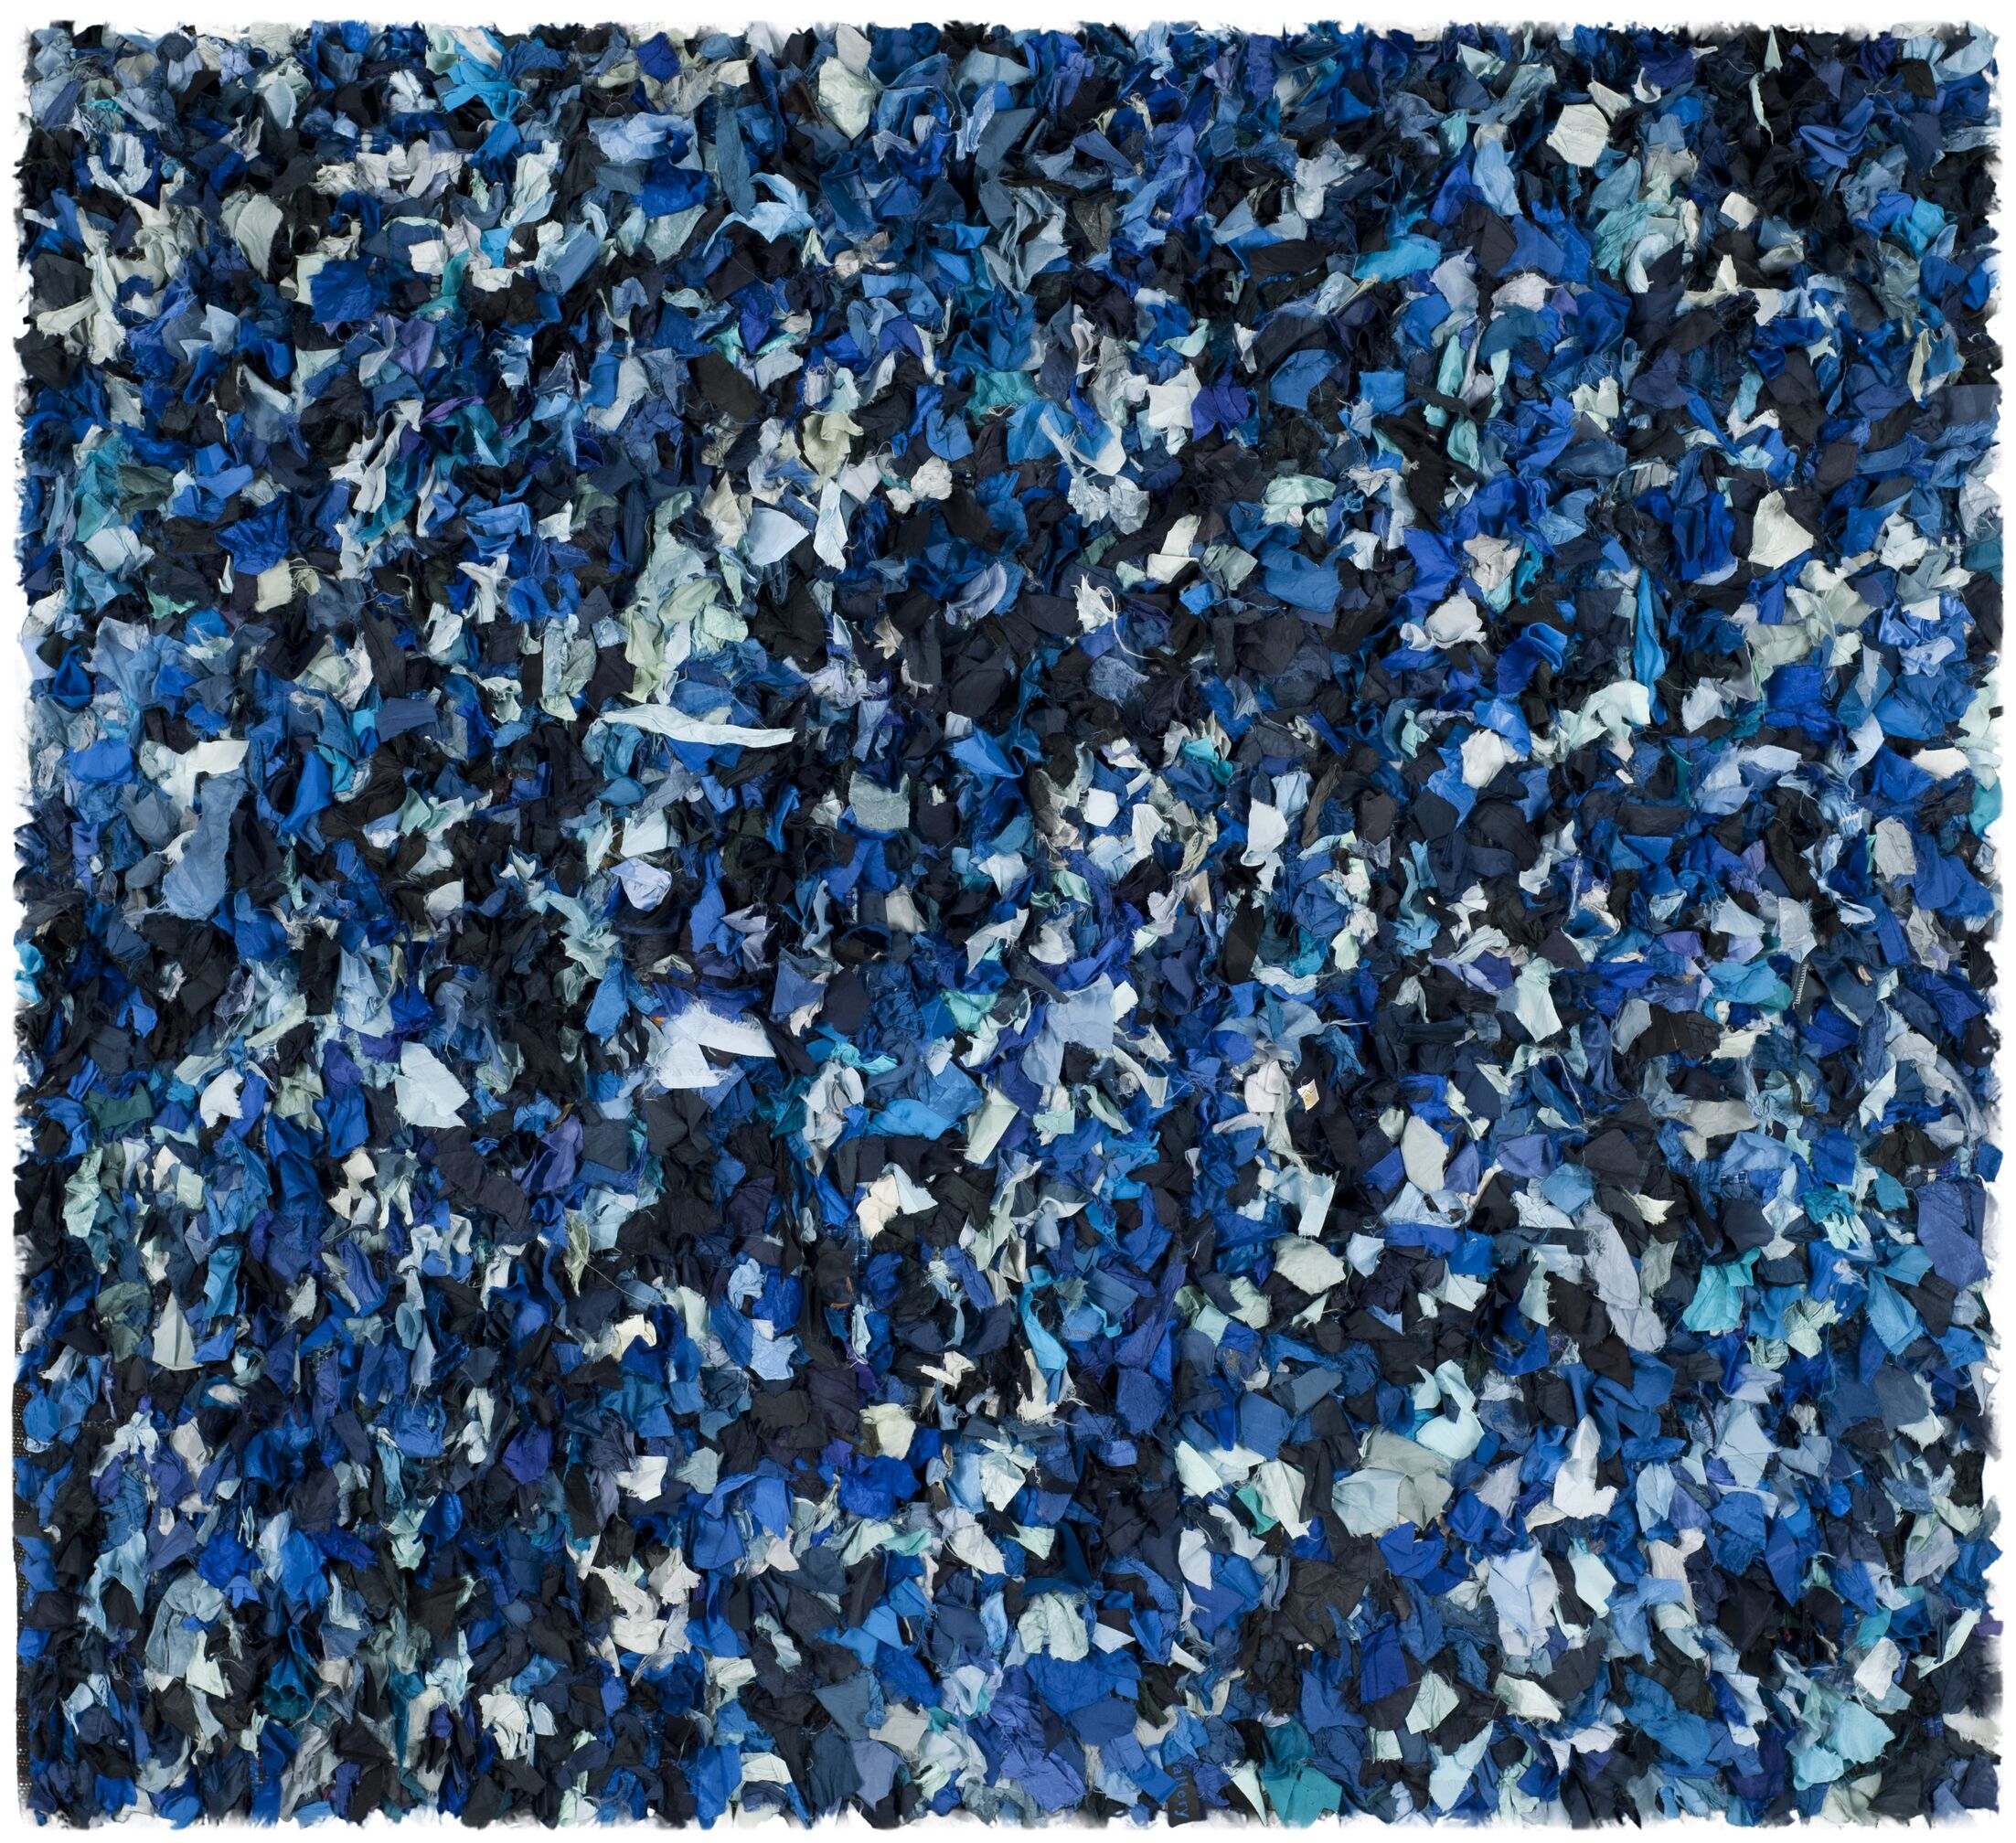 Messiah Hand-Tufted Blue/Black Area Rug Rug Size: Square 8'